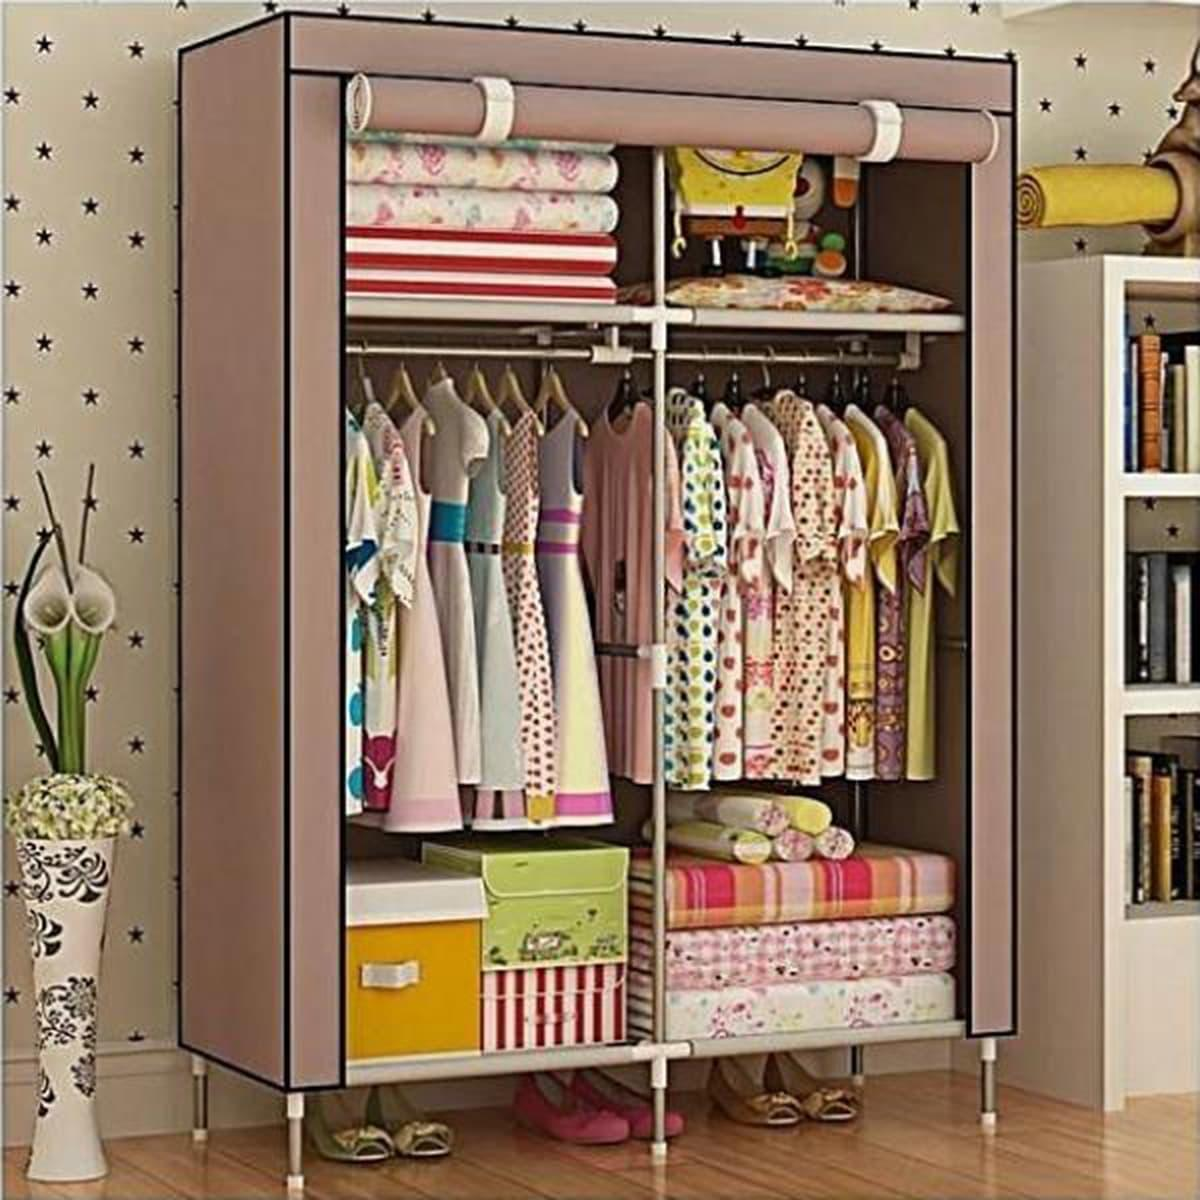 Stainless Steel and Fabric Storage Wardrobe - Coffee